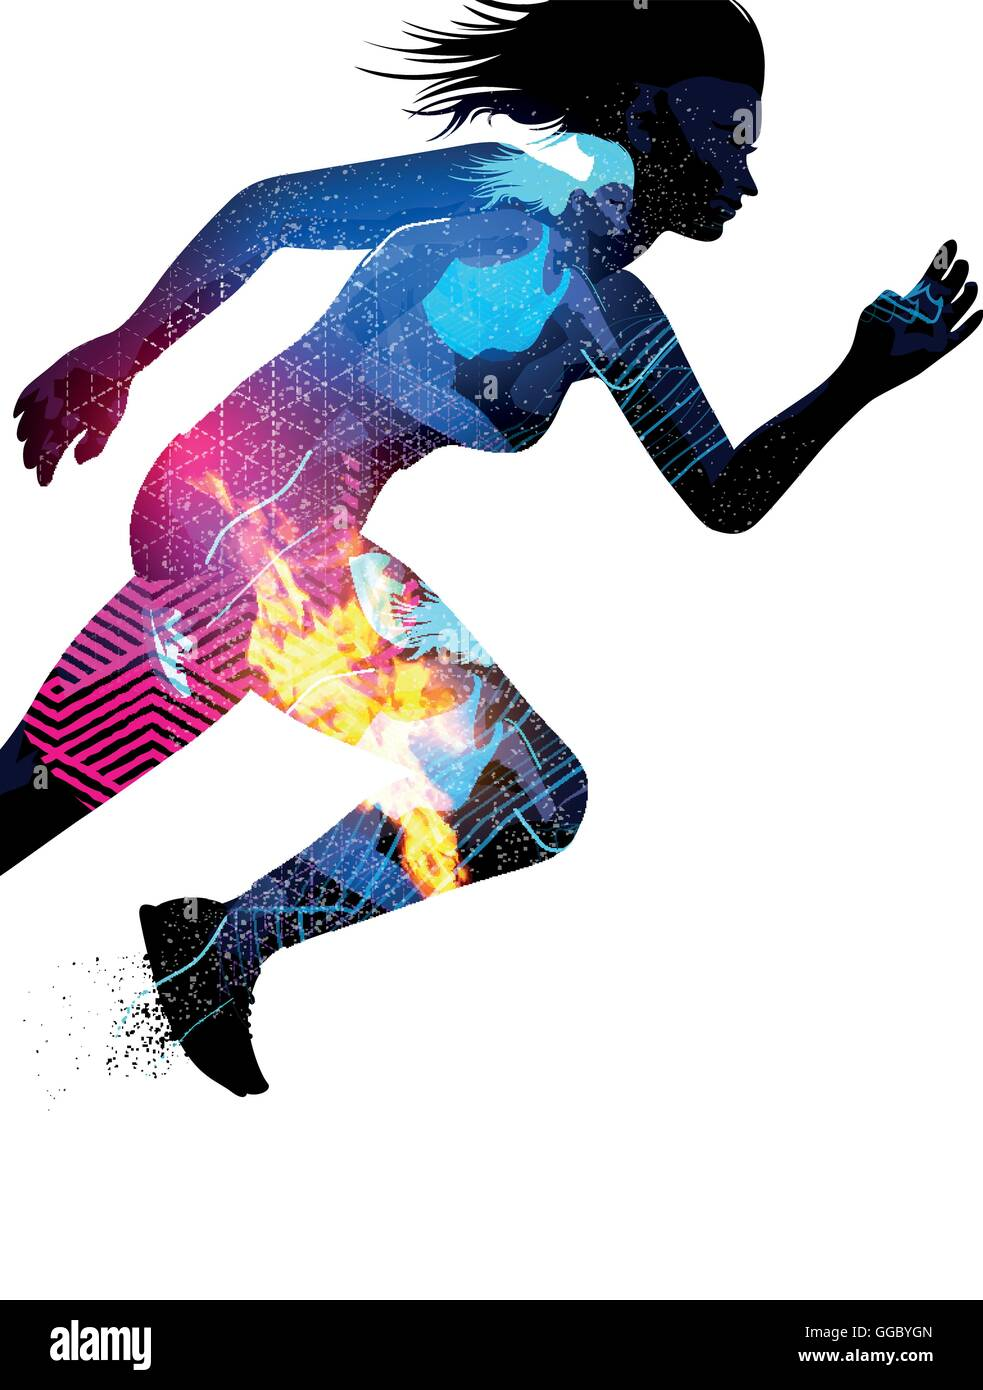 Double exposure effect vector illustration of a running sports woman with texture effects. - Stock Image